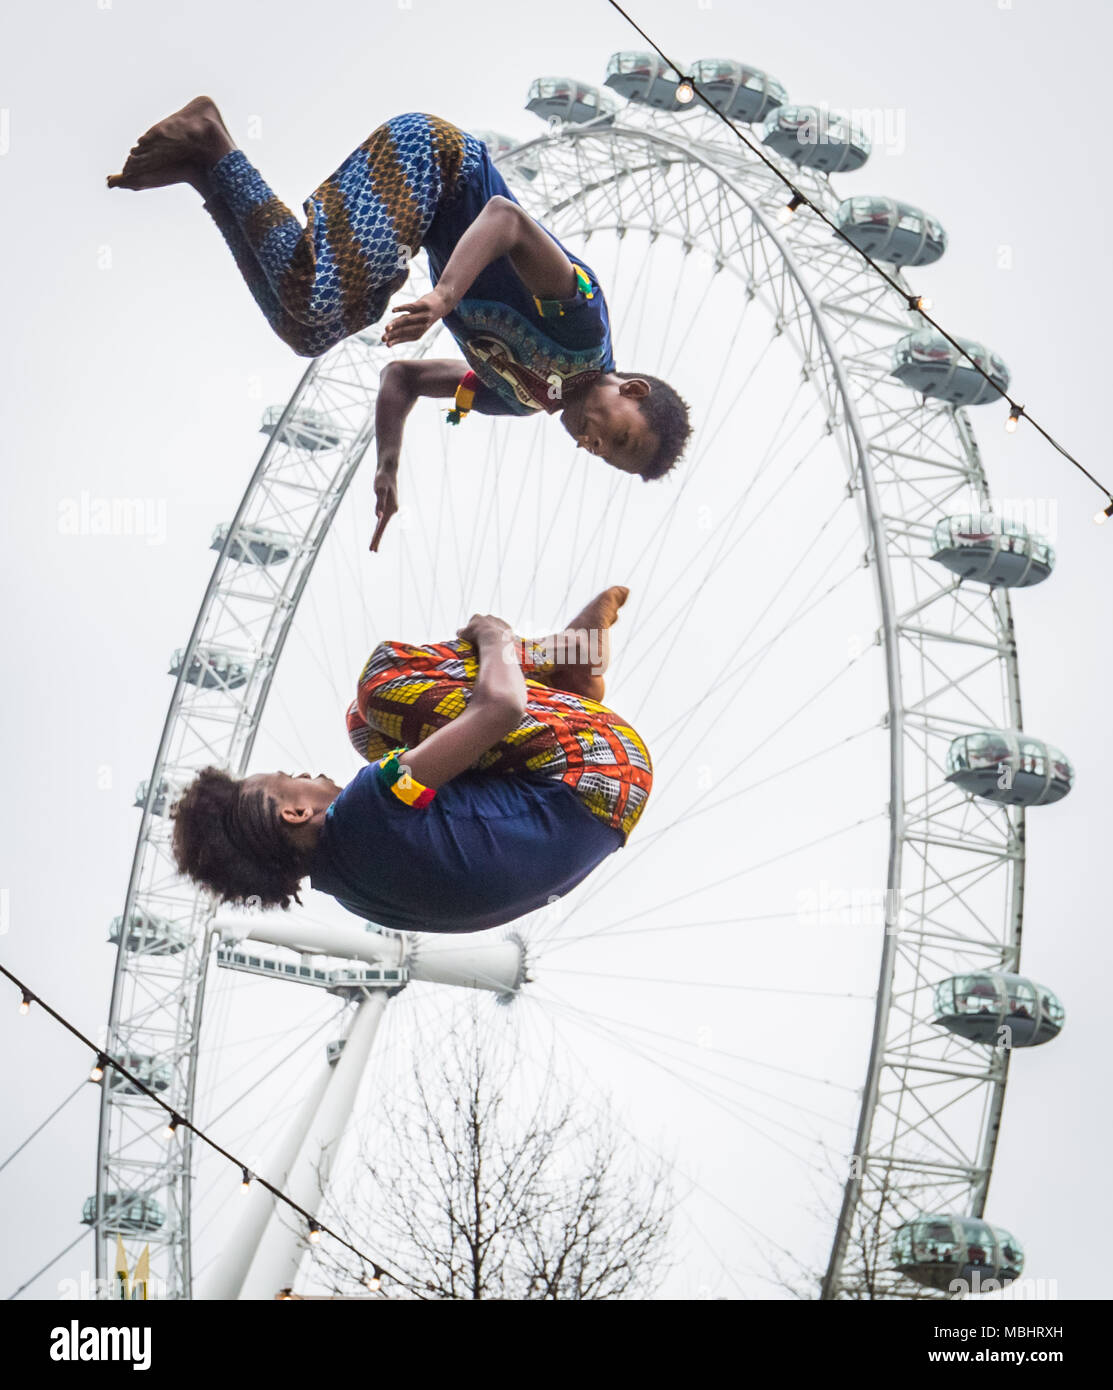 London, UK. 10th April 2018. Launch performance of Circus Abyssinia: Ethiopian Dream. The headline act of the Underbelly Festival Southbank to celebrate 250 years of circus and 10 years of Underbelly on the Southbank. Credit: Guy Corbishley/Alamy Live News Stock Photo